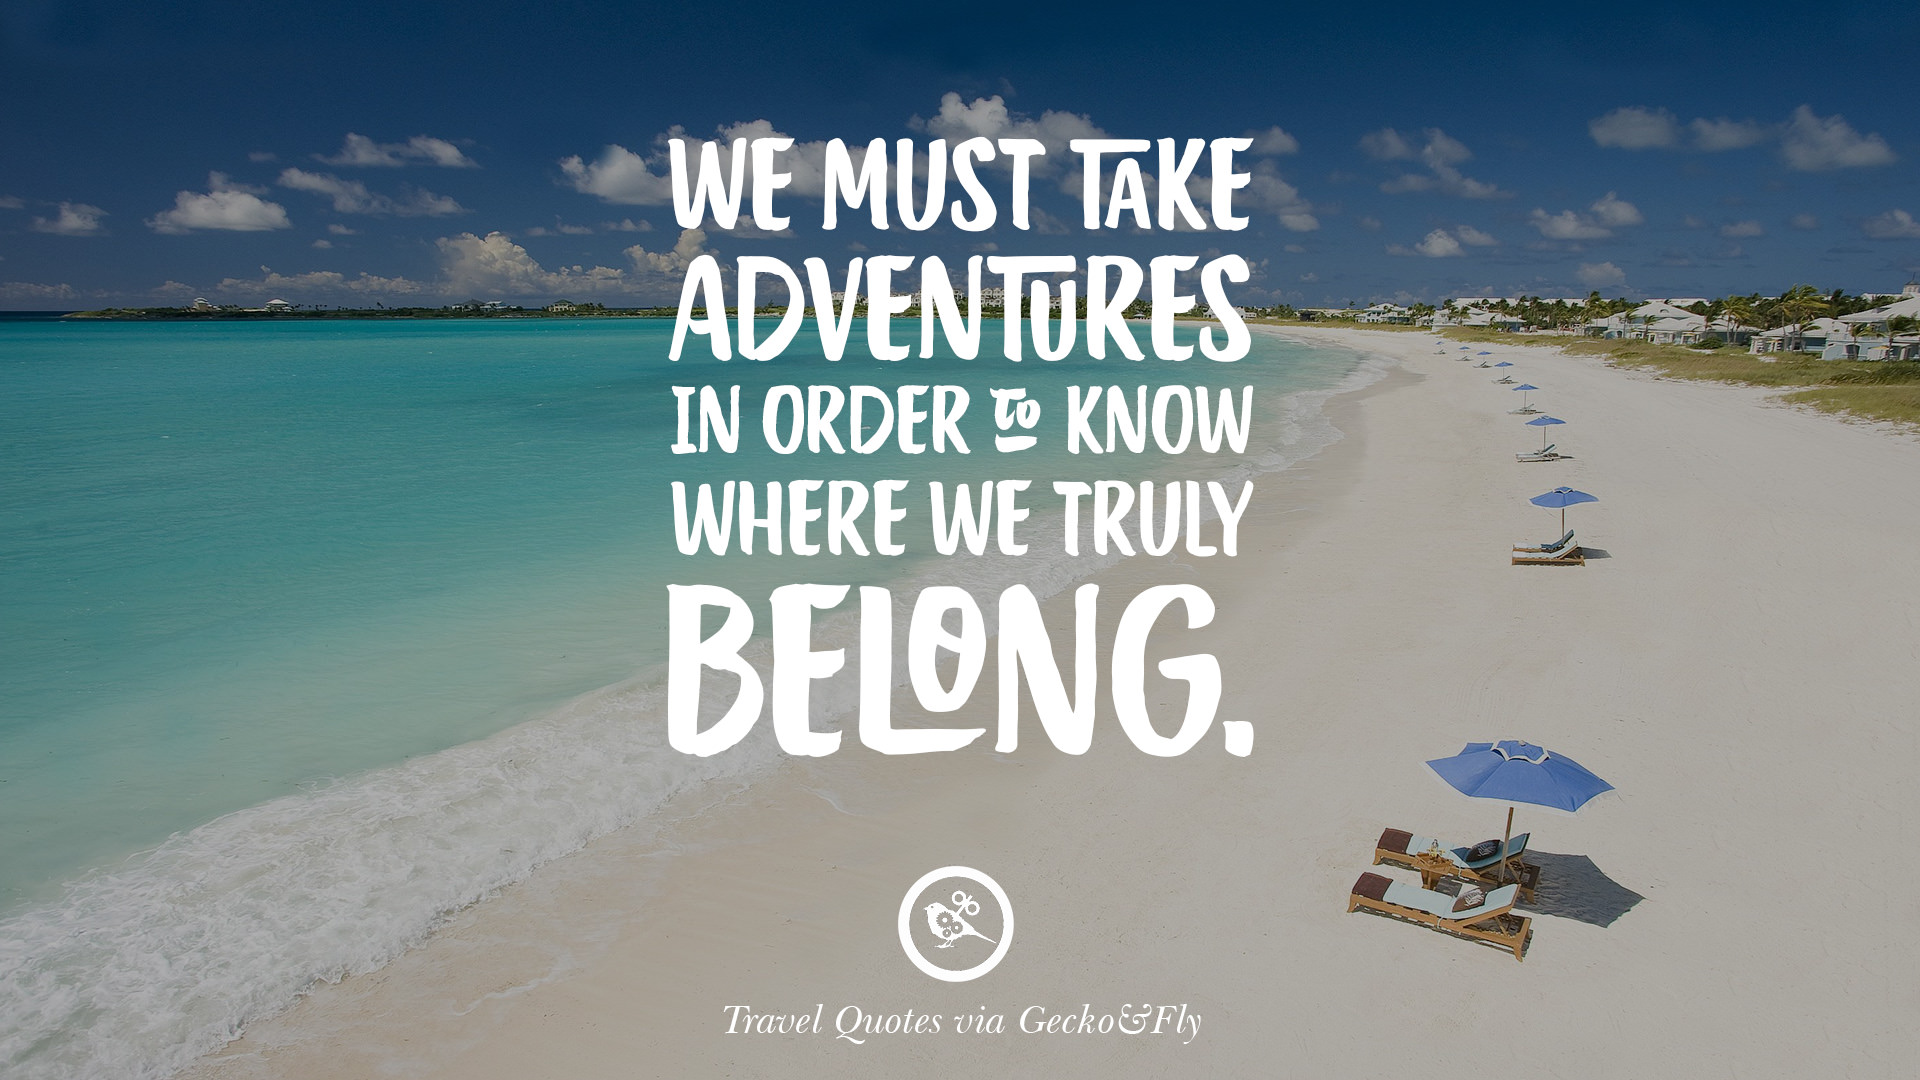 Adventure Quotes: 20 Adventurous Quotes On Traveling And Exploring The World